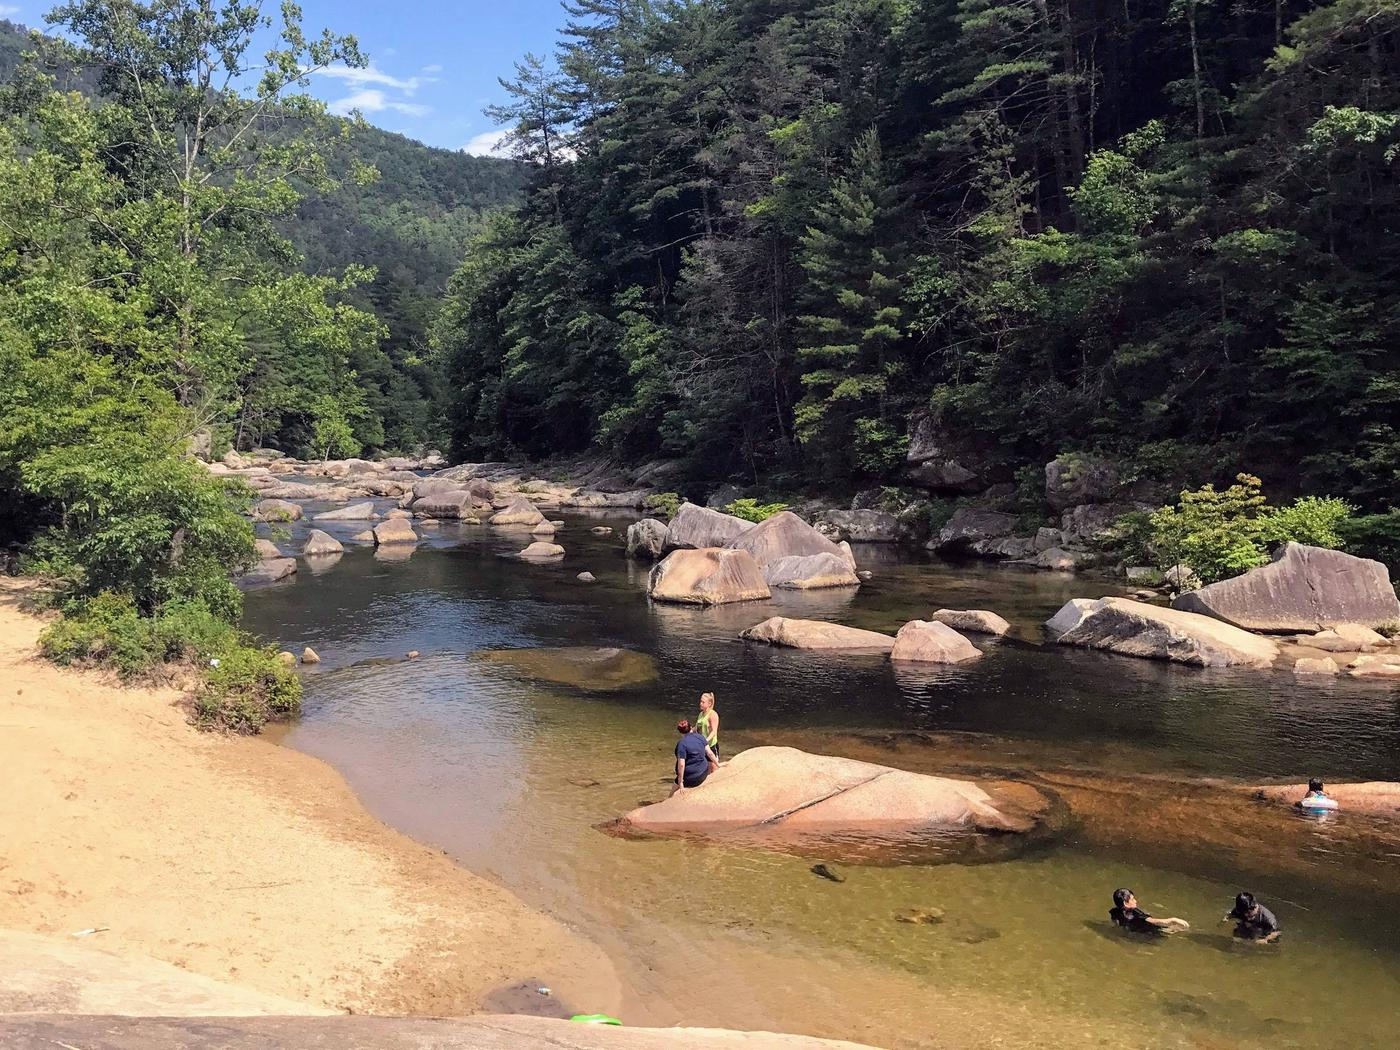 Wilson CreekMortimer Campground is located in the Wilson Creek Wild and Scenic River Corridor